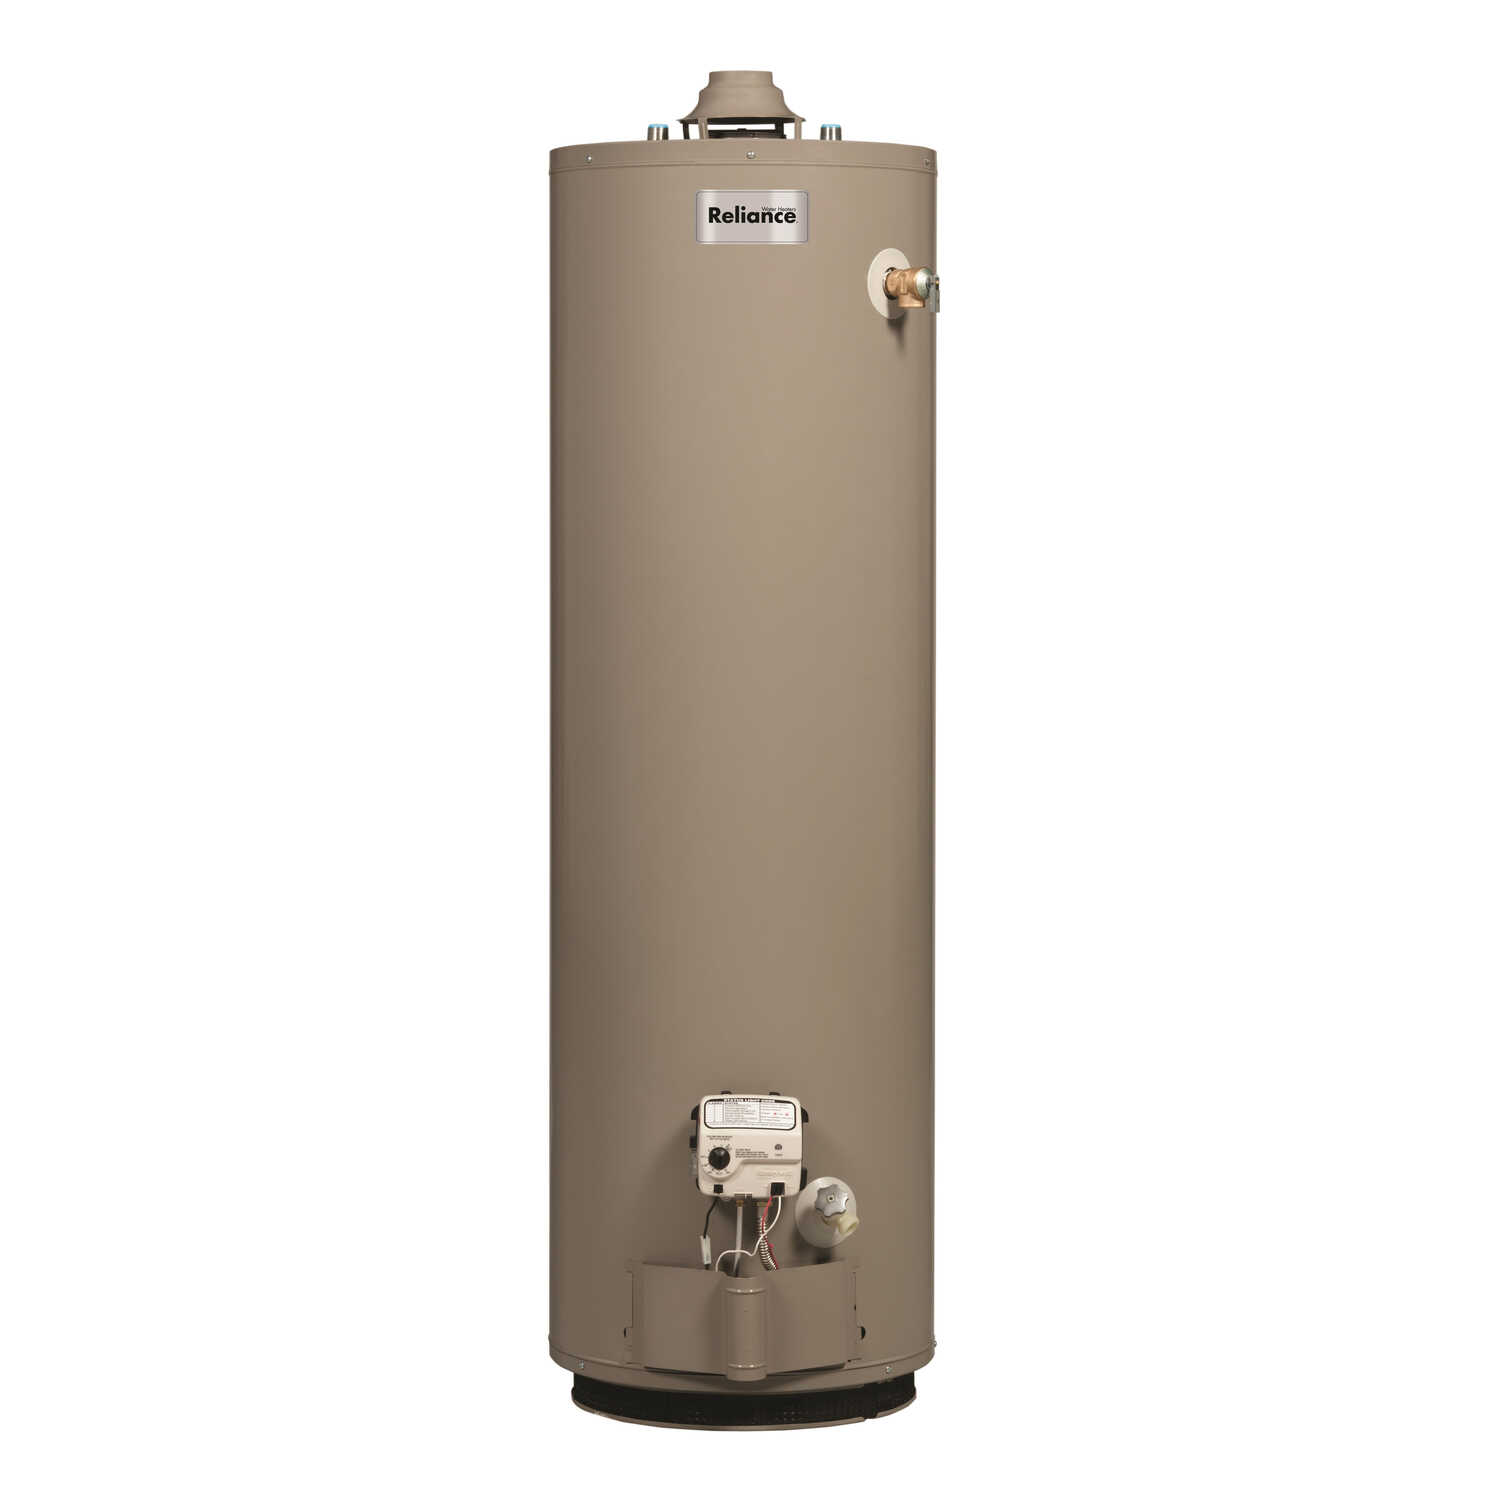 Reliance  Natural Gas  Water Heater  62 in. H x 20 in. L x 20 in. W 40 gal.